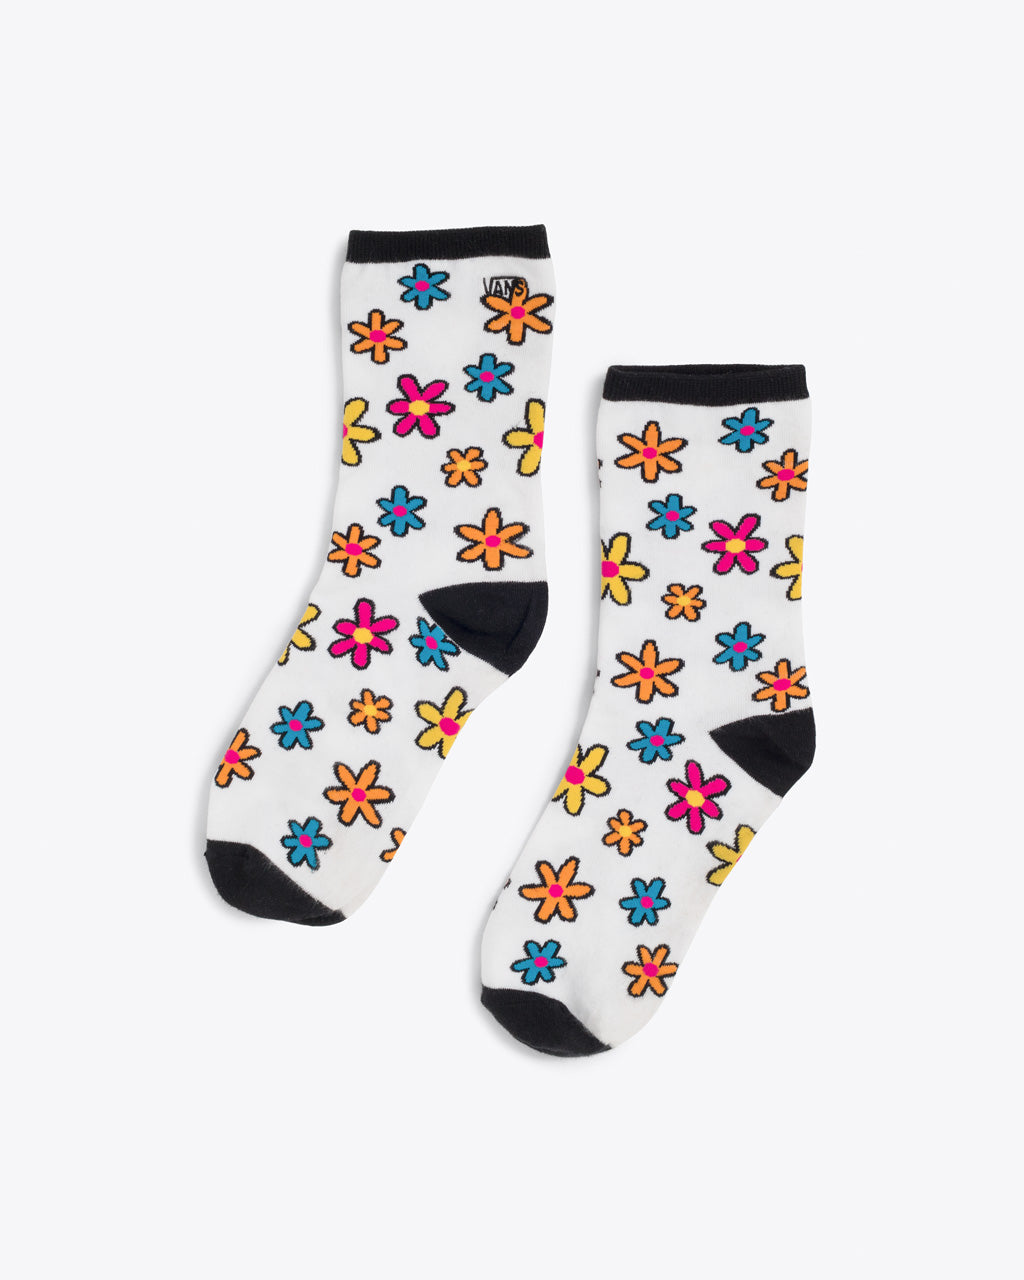 white above the ankle socks with a multi flower pattern and a black heel, toe, and band